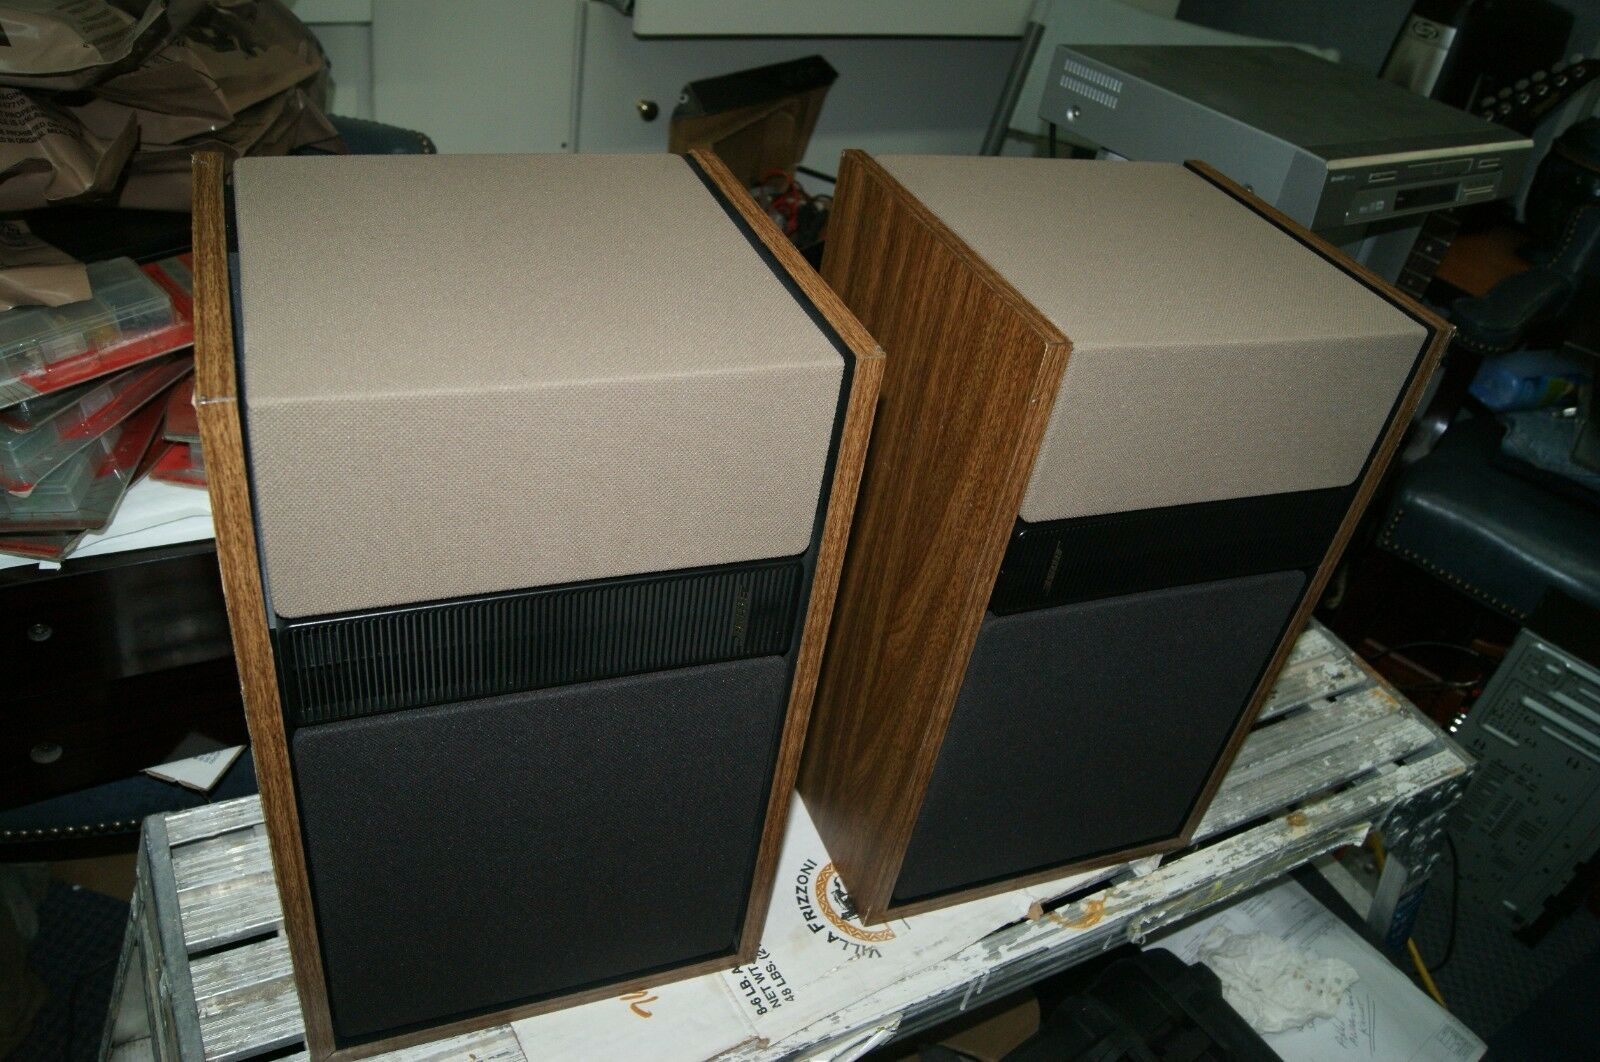 BOSE 301 SERIES II VINTAGE SPEAKERS GREAT SOUND SOME DAMAGE ON THE CABINETS